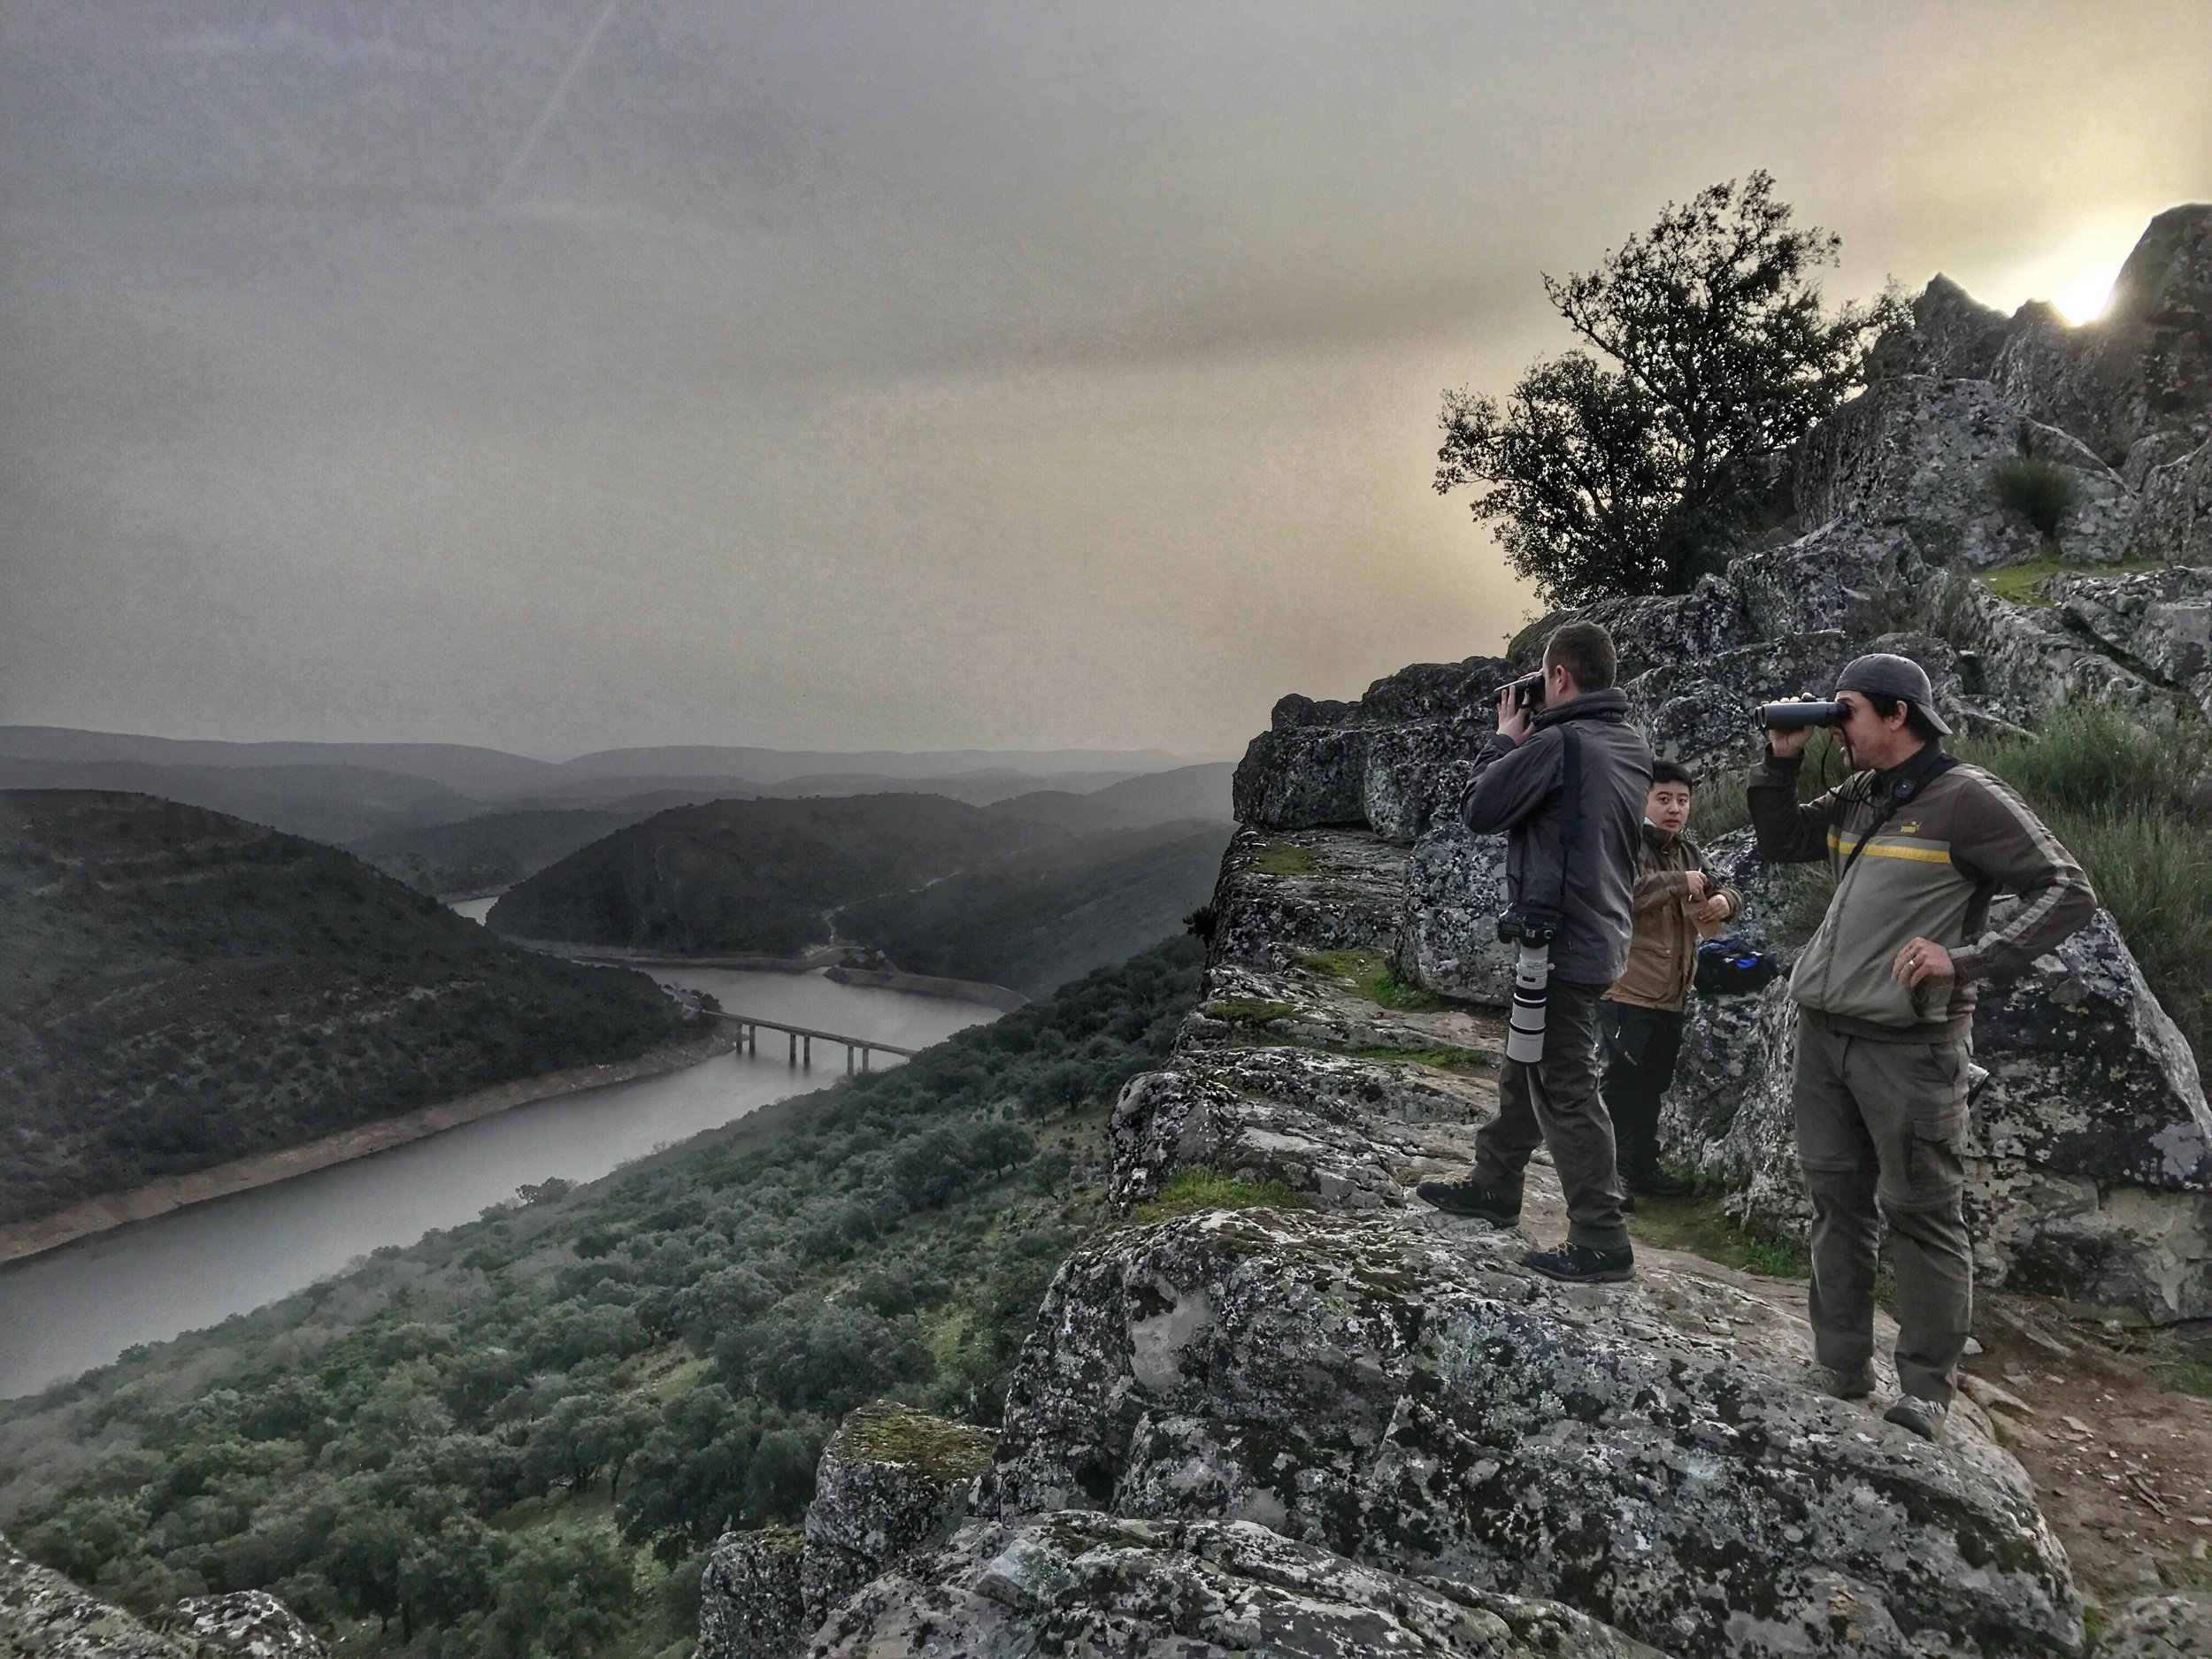 Birders looking badass as hell climbing up to Monfragüe Castle to do some birding in Monfragüe National Park in Extremadura.